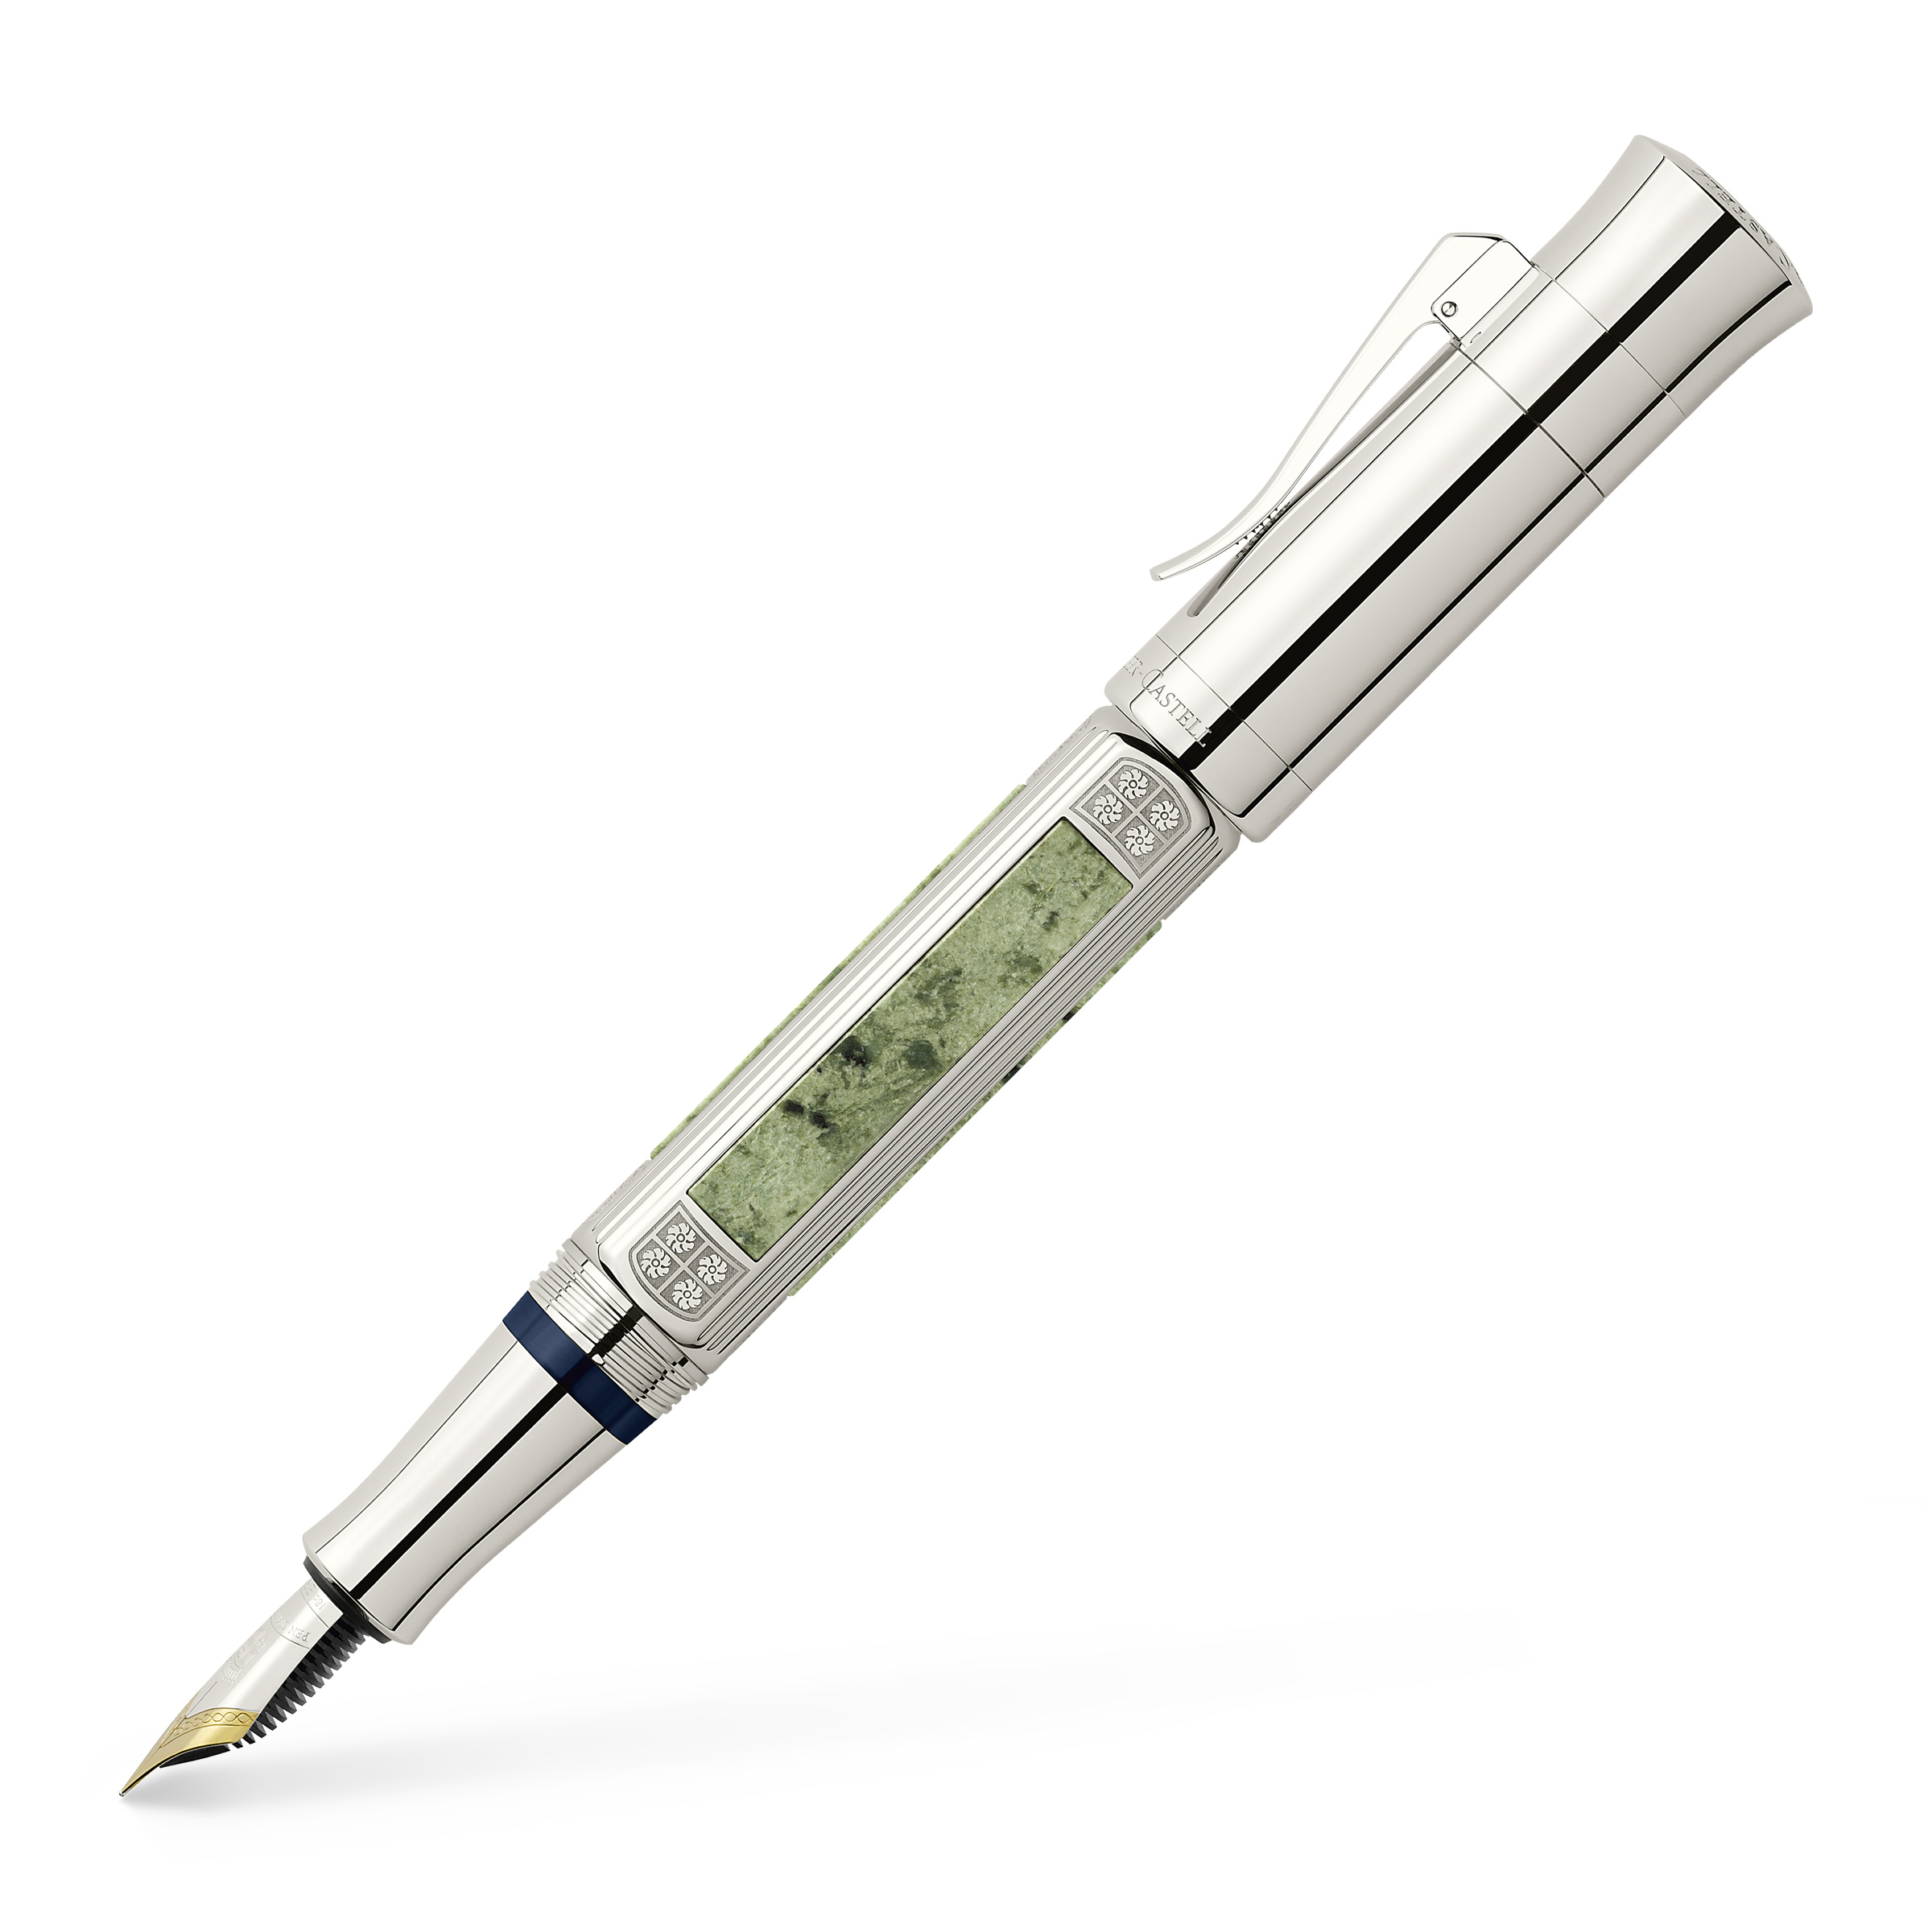 Graf-von-Faber-Castell - Fountain pen, Pen of the Year 2015 platinum-plated, Medium